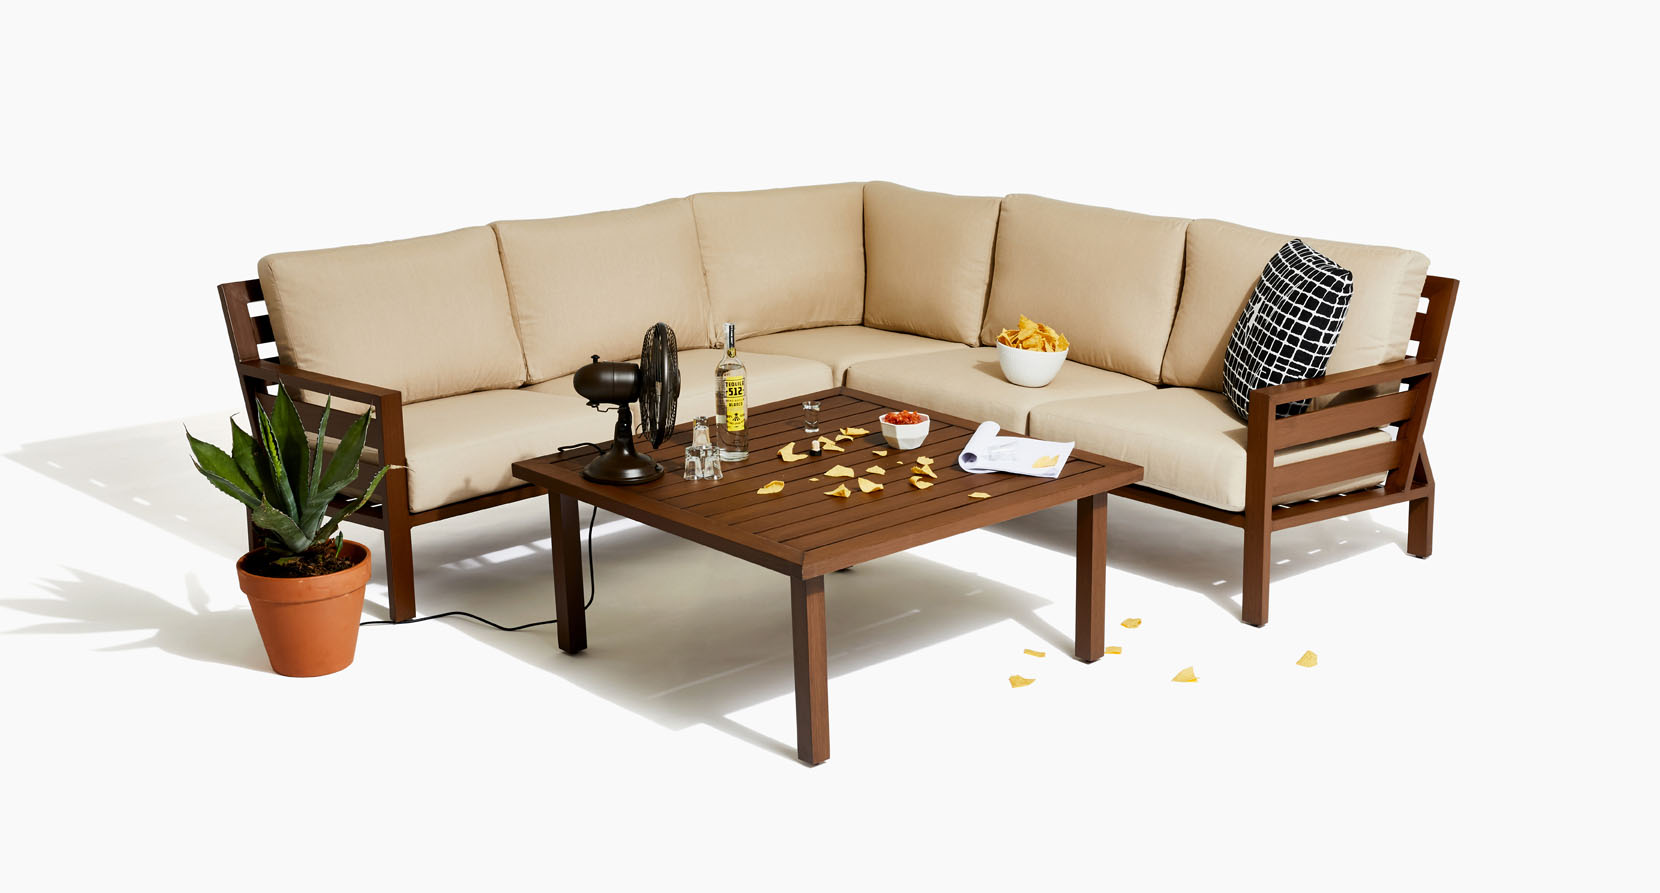 The Script Collection patio sectional